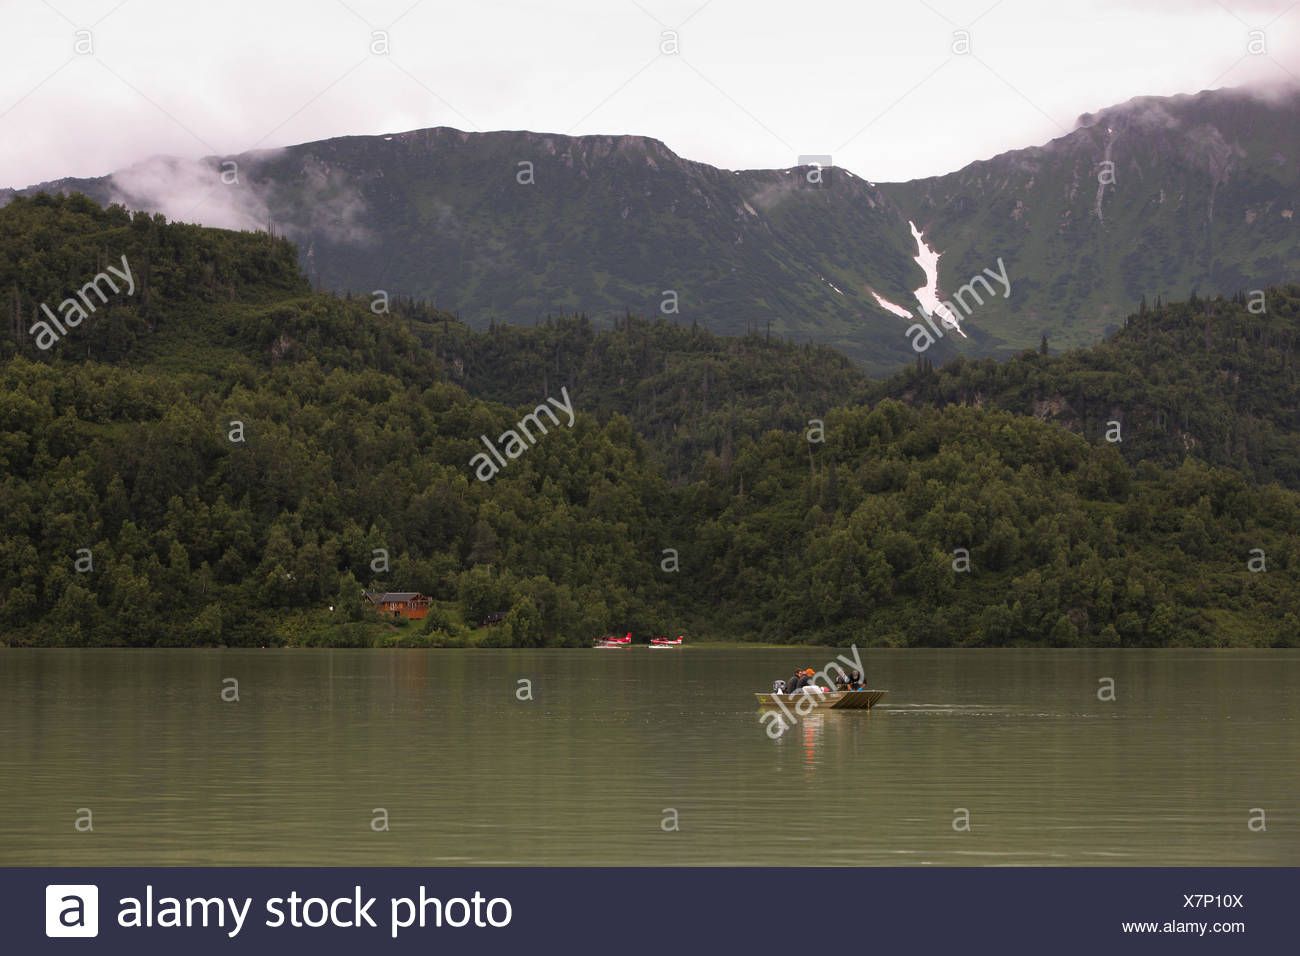 Fishermen in a small boat navigate water amongst a lush tree covered landscape. - Stock Image